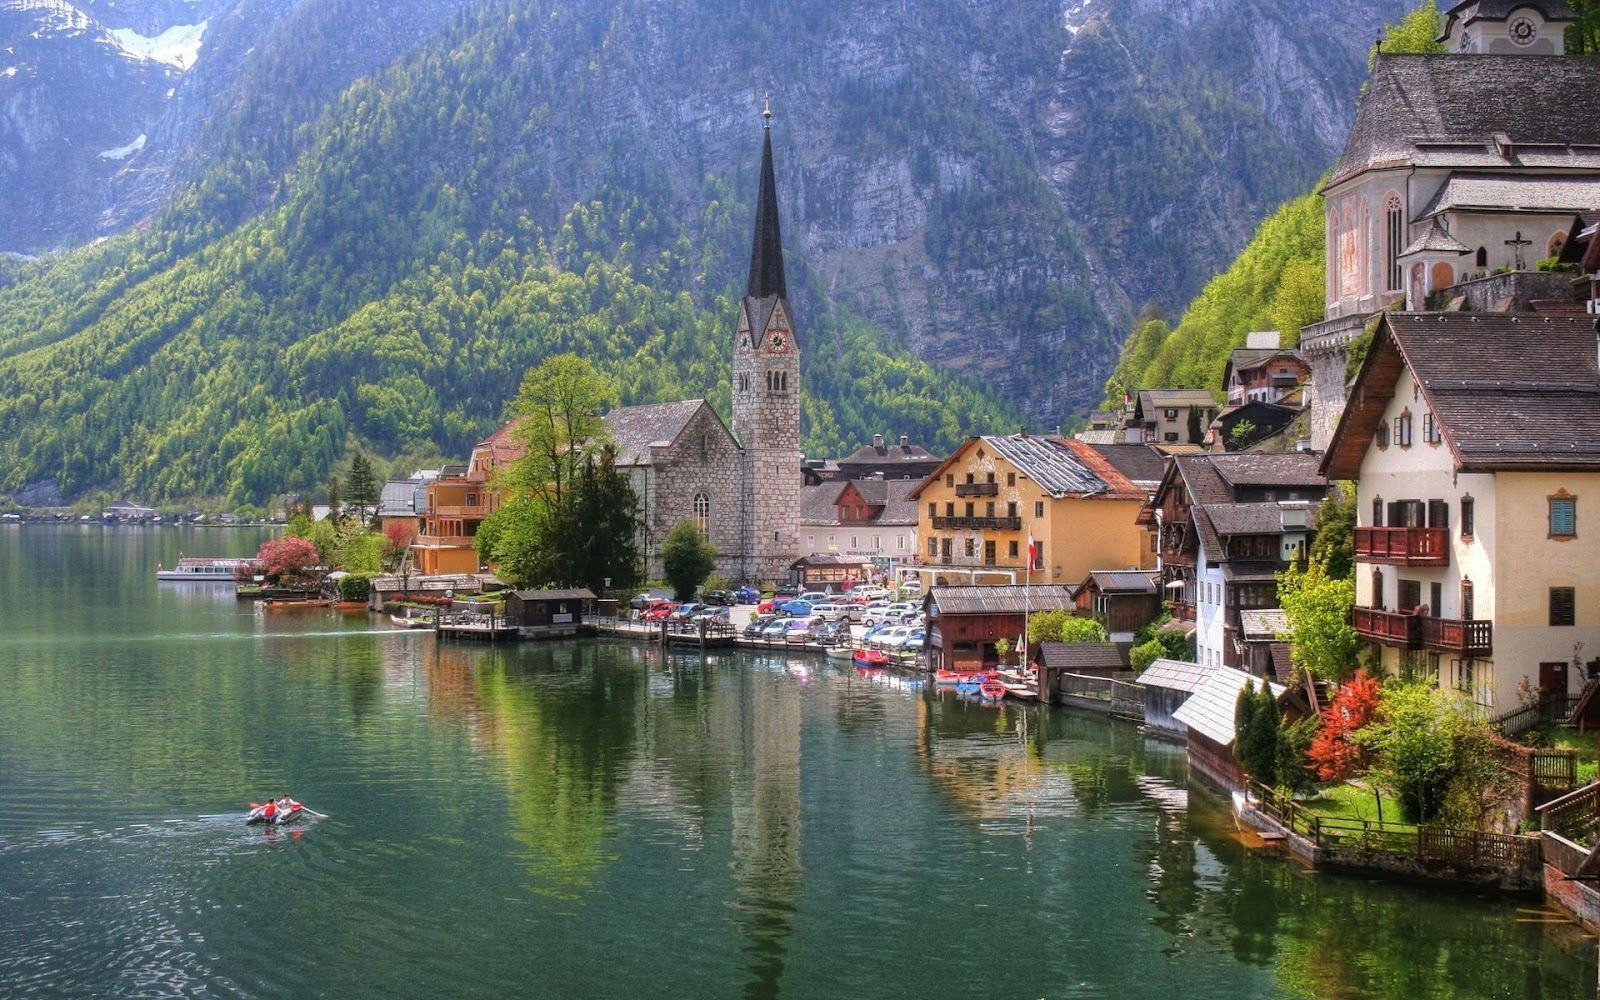 Fulpmes Austria  city images : Travel Trip Journey: Hallstatt, Austria